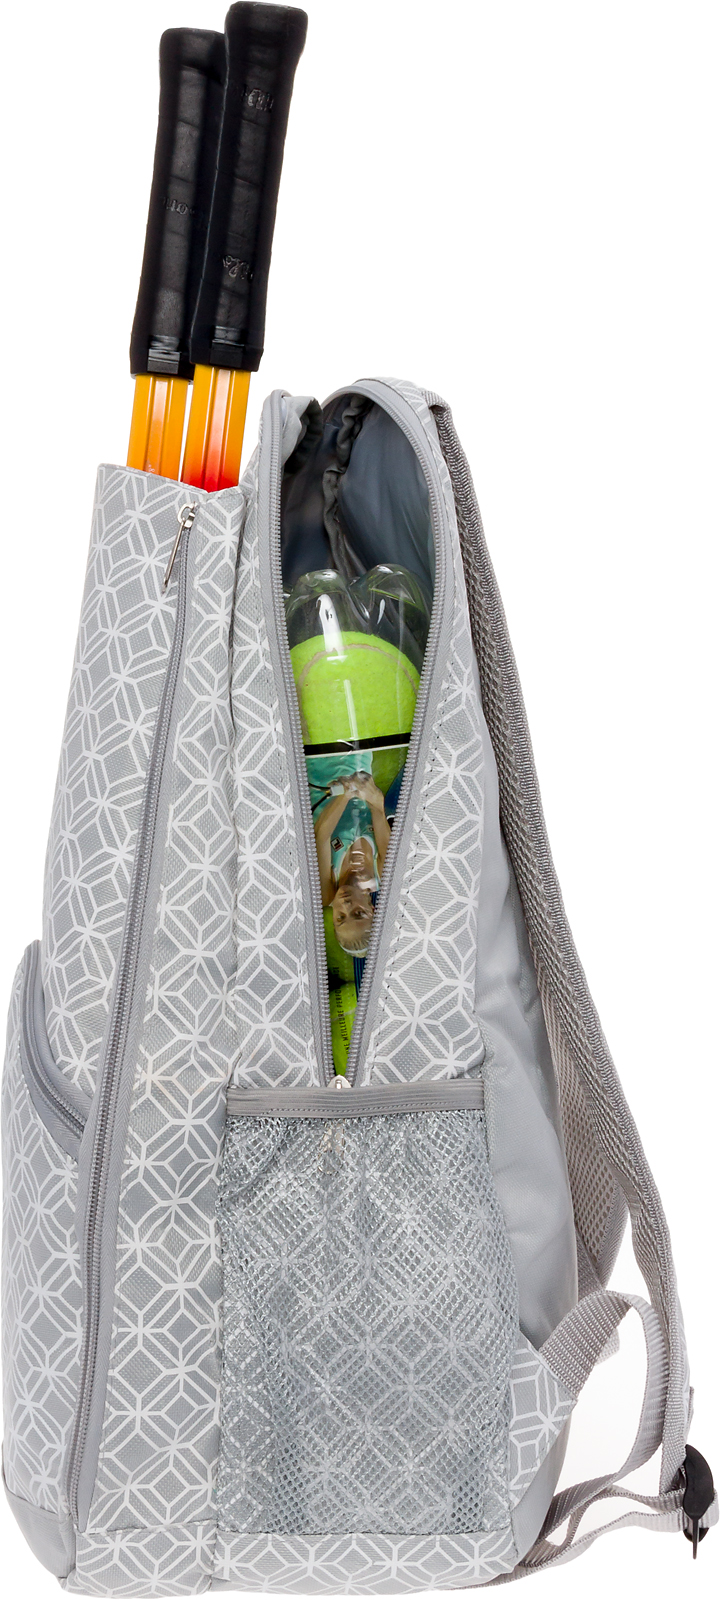 Details About Lish New Women S Ace Printed Tennis Racket Holder Travel Backpack Tote Bag